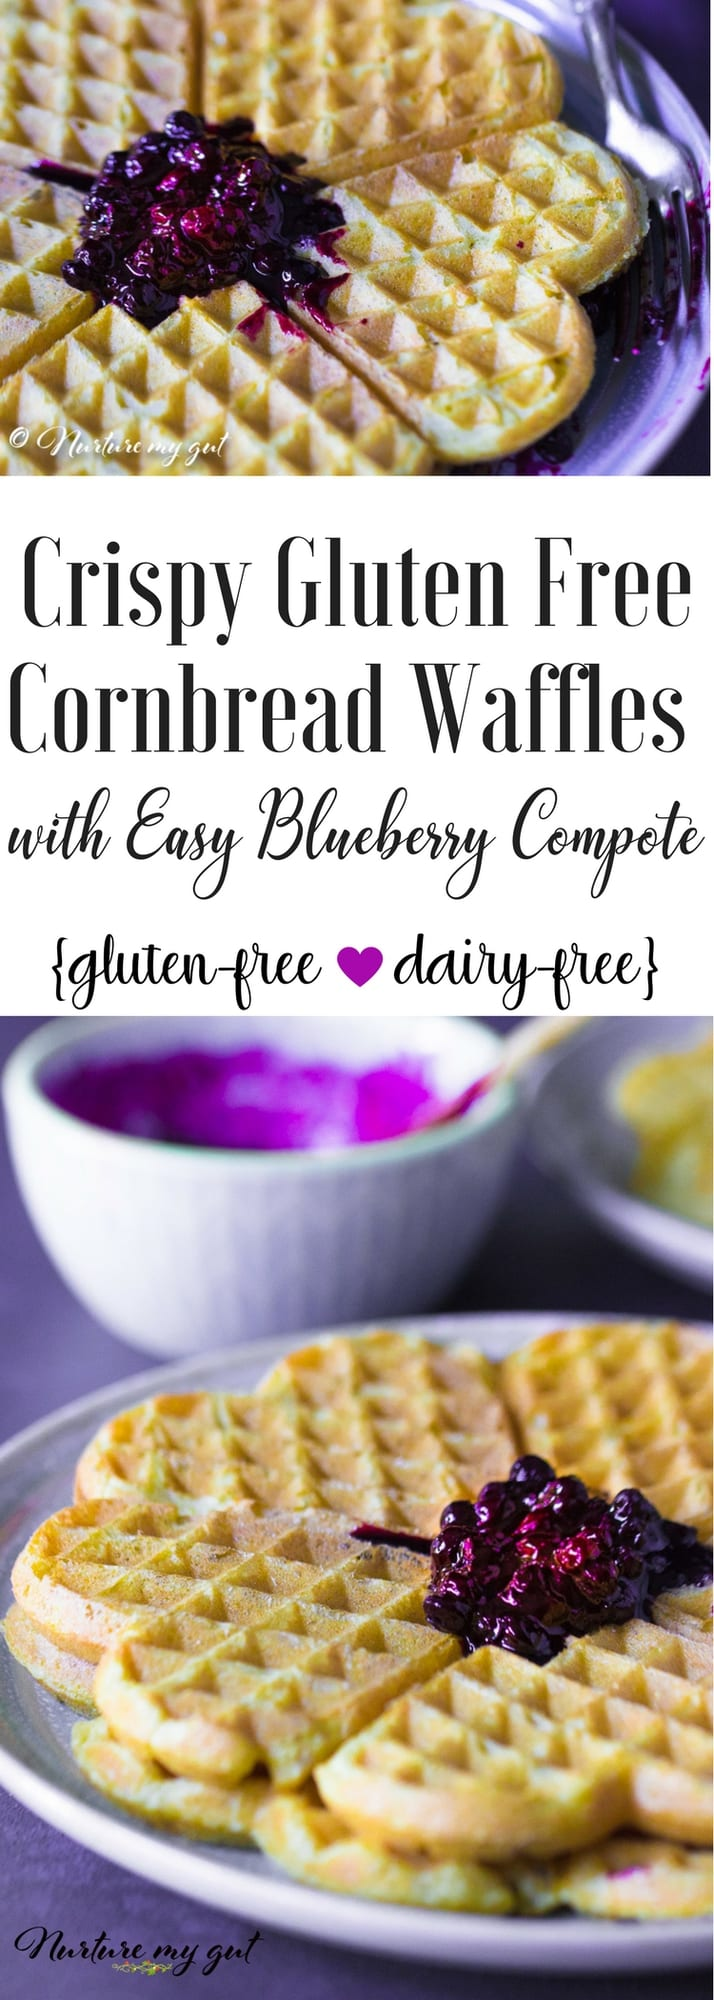 Gluten Free Cornbread Waffles with Easy Blueberry Compote